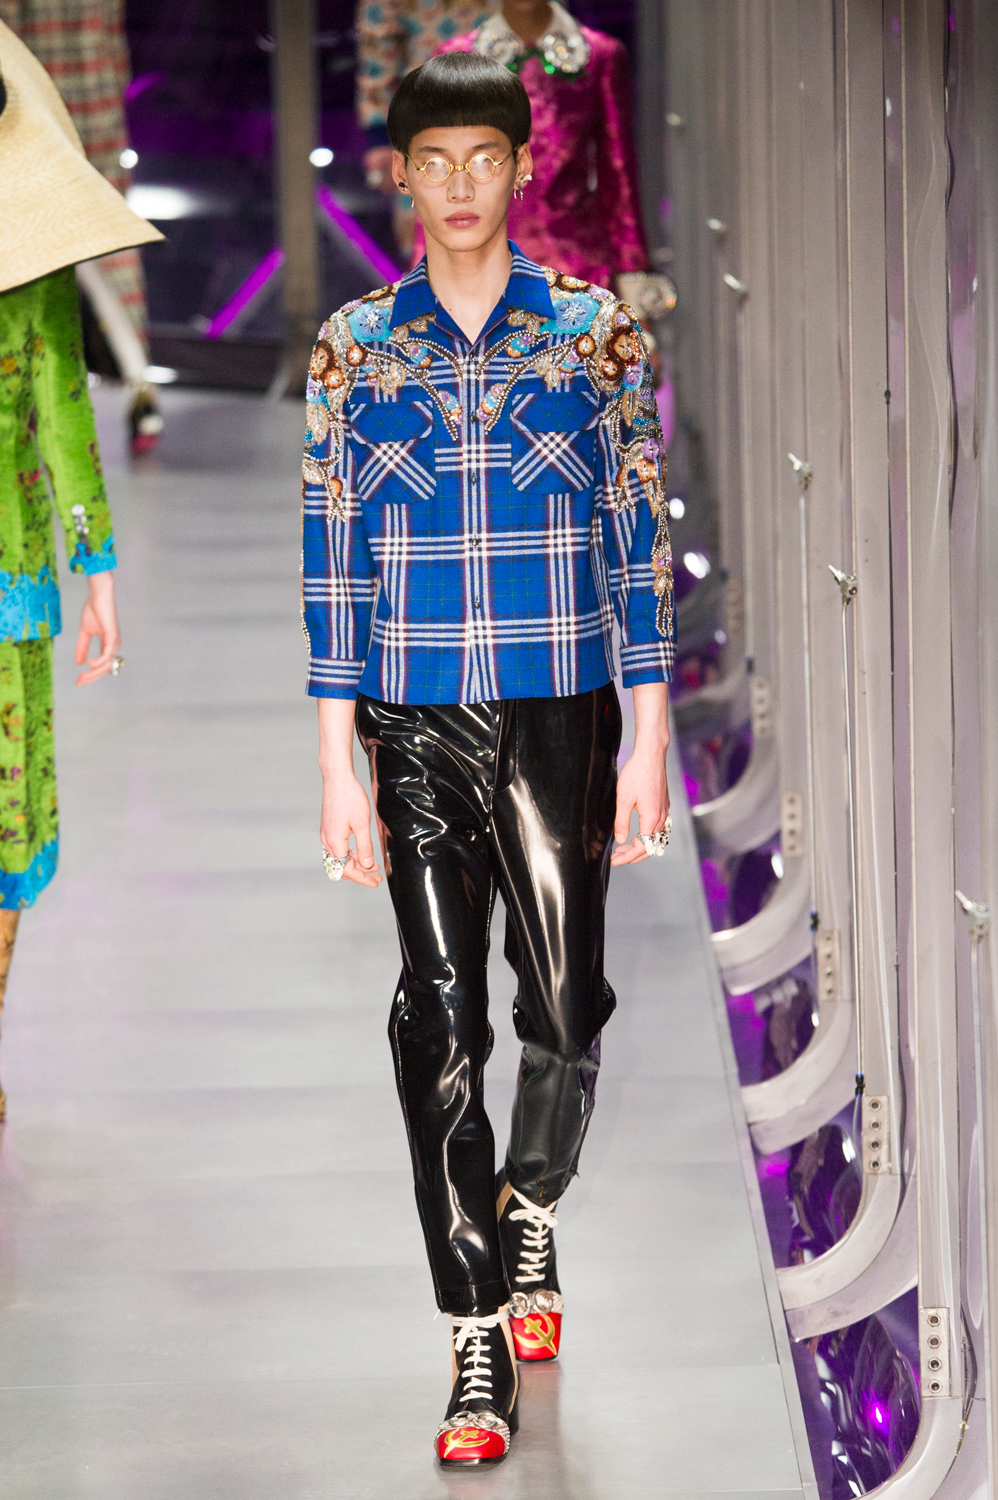 Image result for 70's plaid trend fall 2017